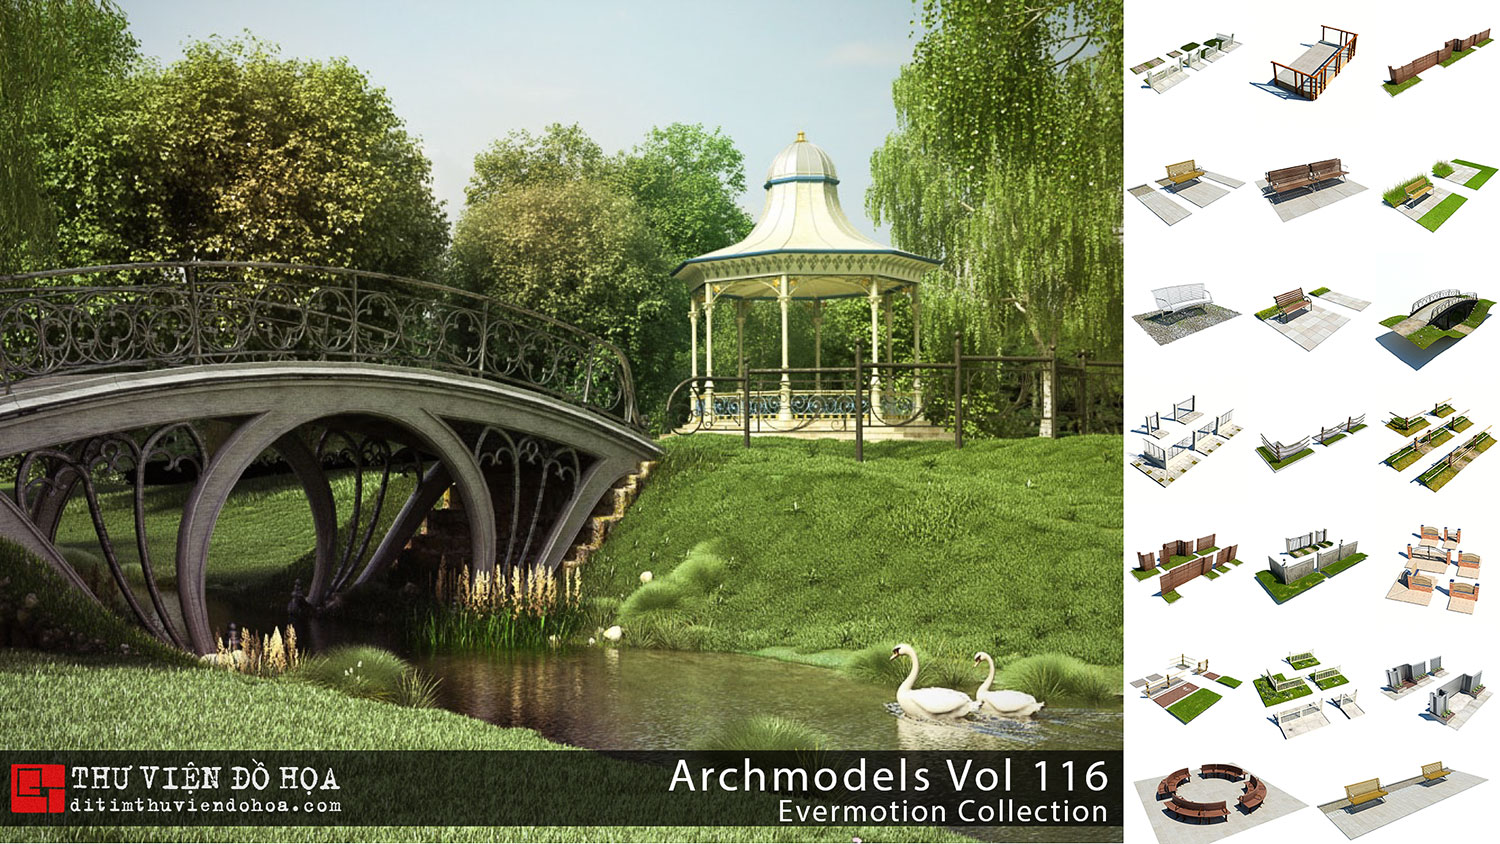 Evermotion Archmodels vol 116